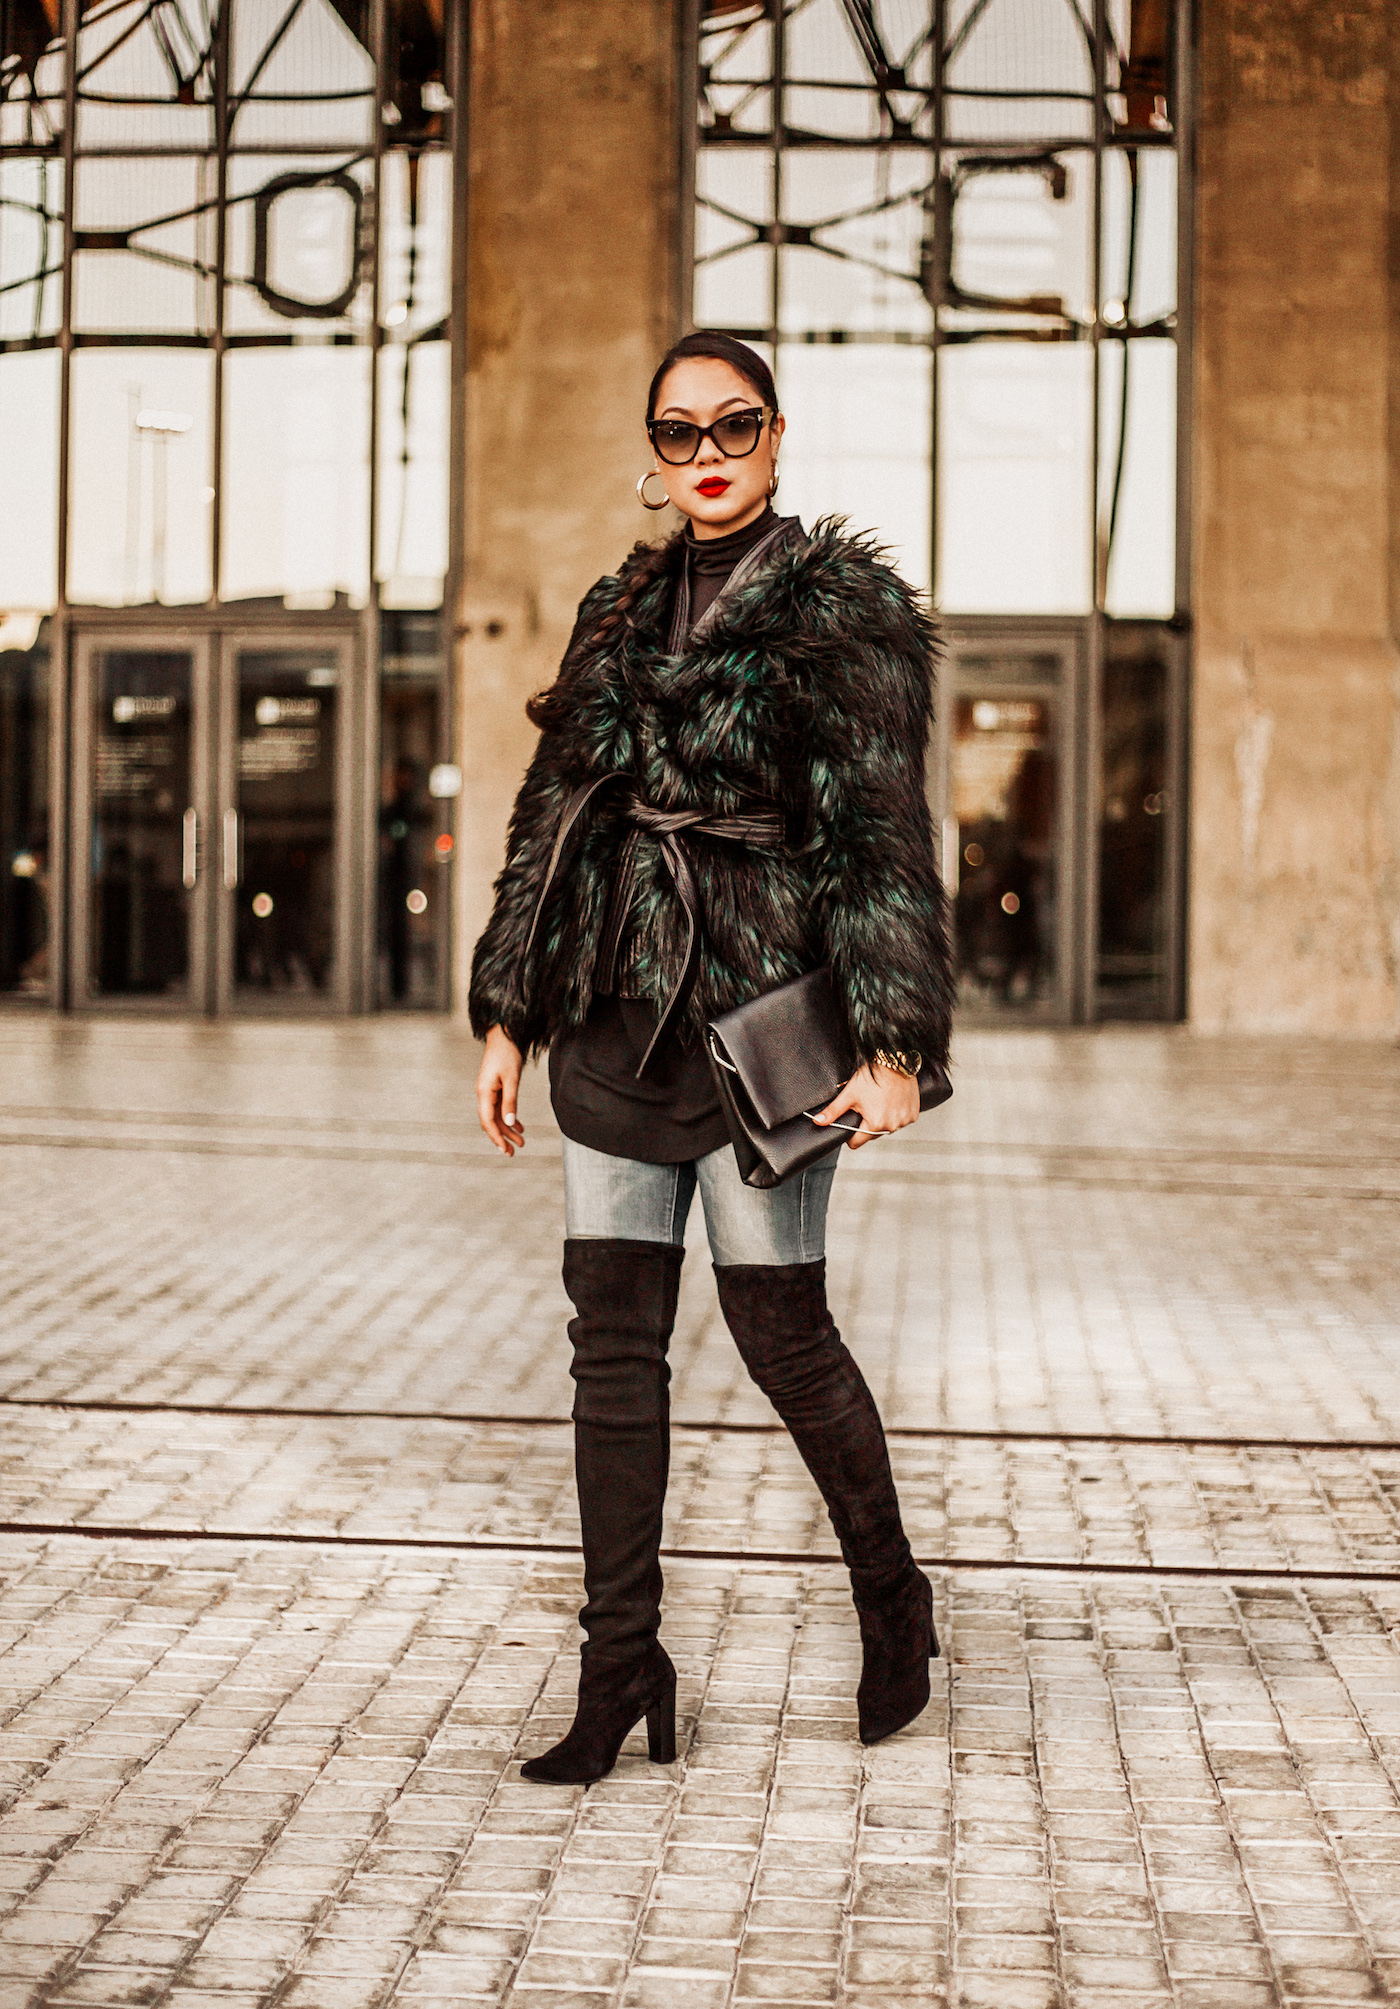 9975aa48641 TOM FORD INSTAGRAM - Fashion Breed » Blog Archive » Instagram Outfit ...